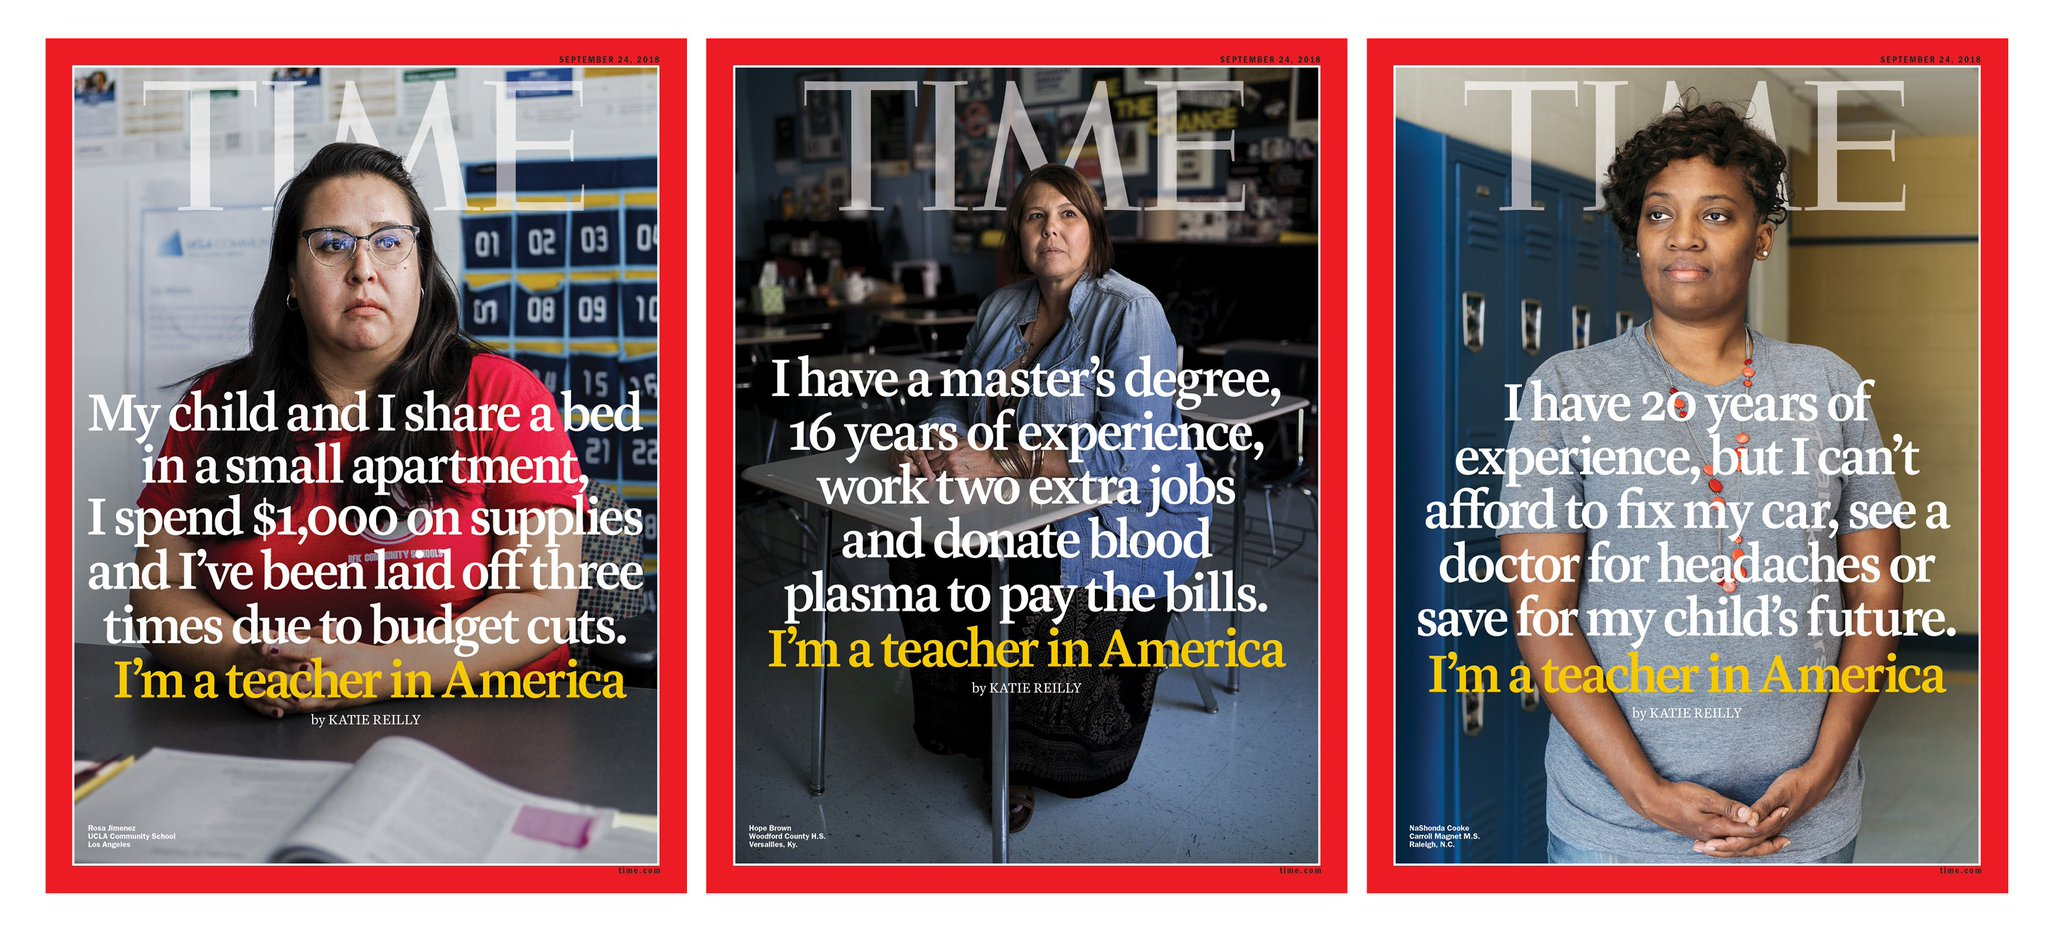 TIME's new cover: This is what it's like to be a teacher in America https://t.co/vc8wKzFP3d https://t.co/YFQrytMype